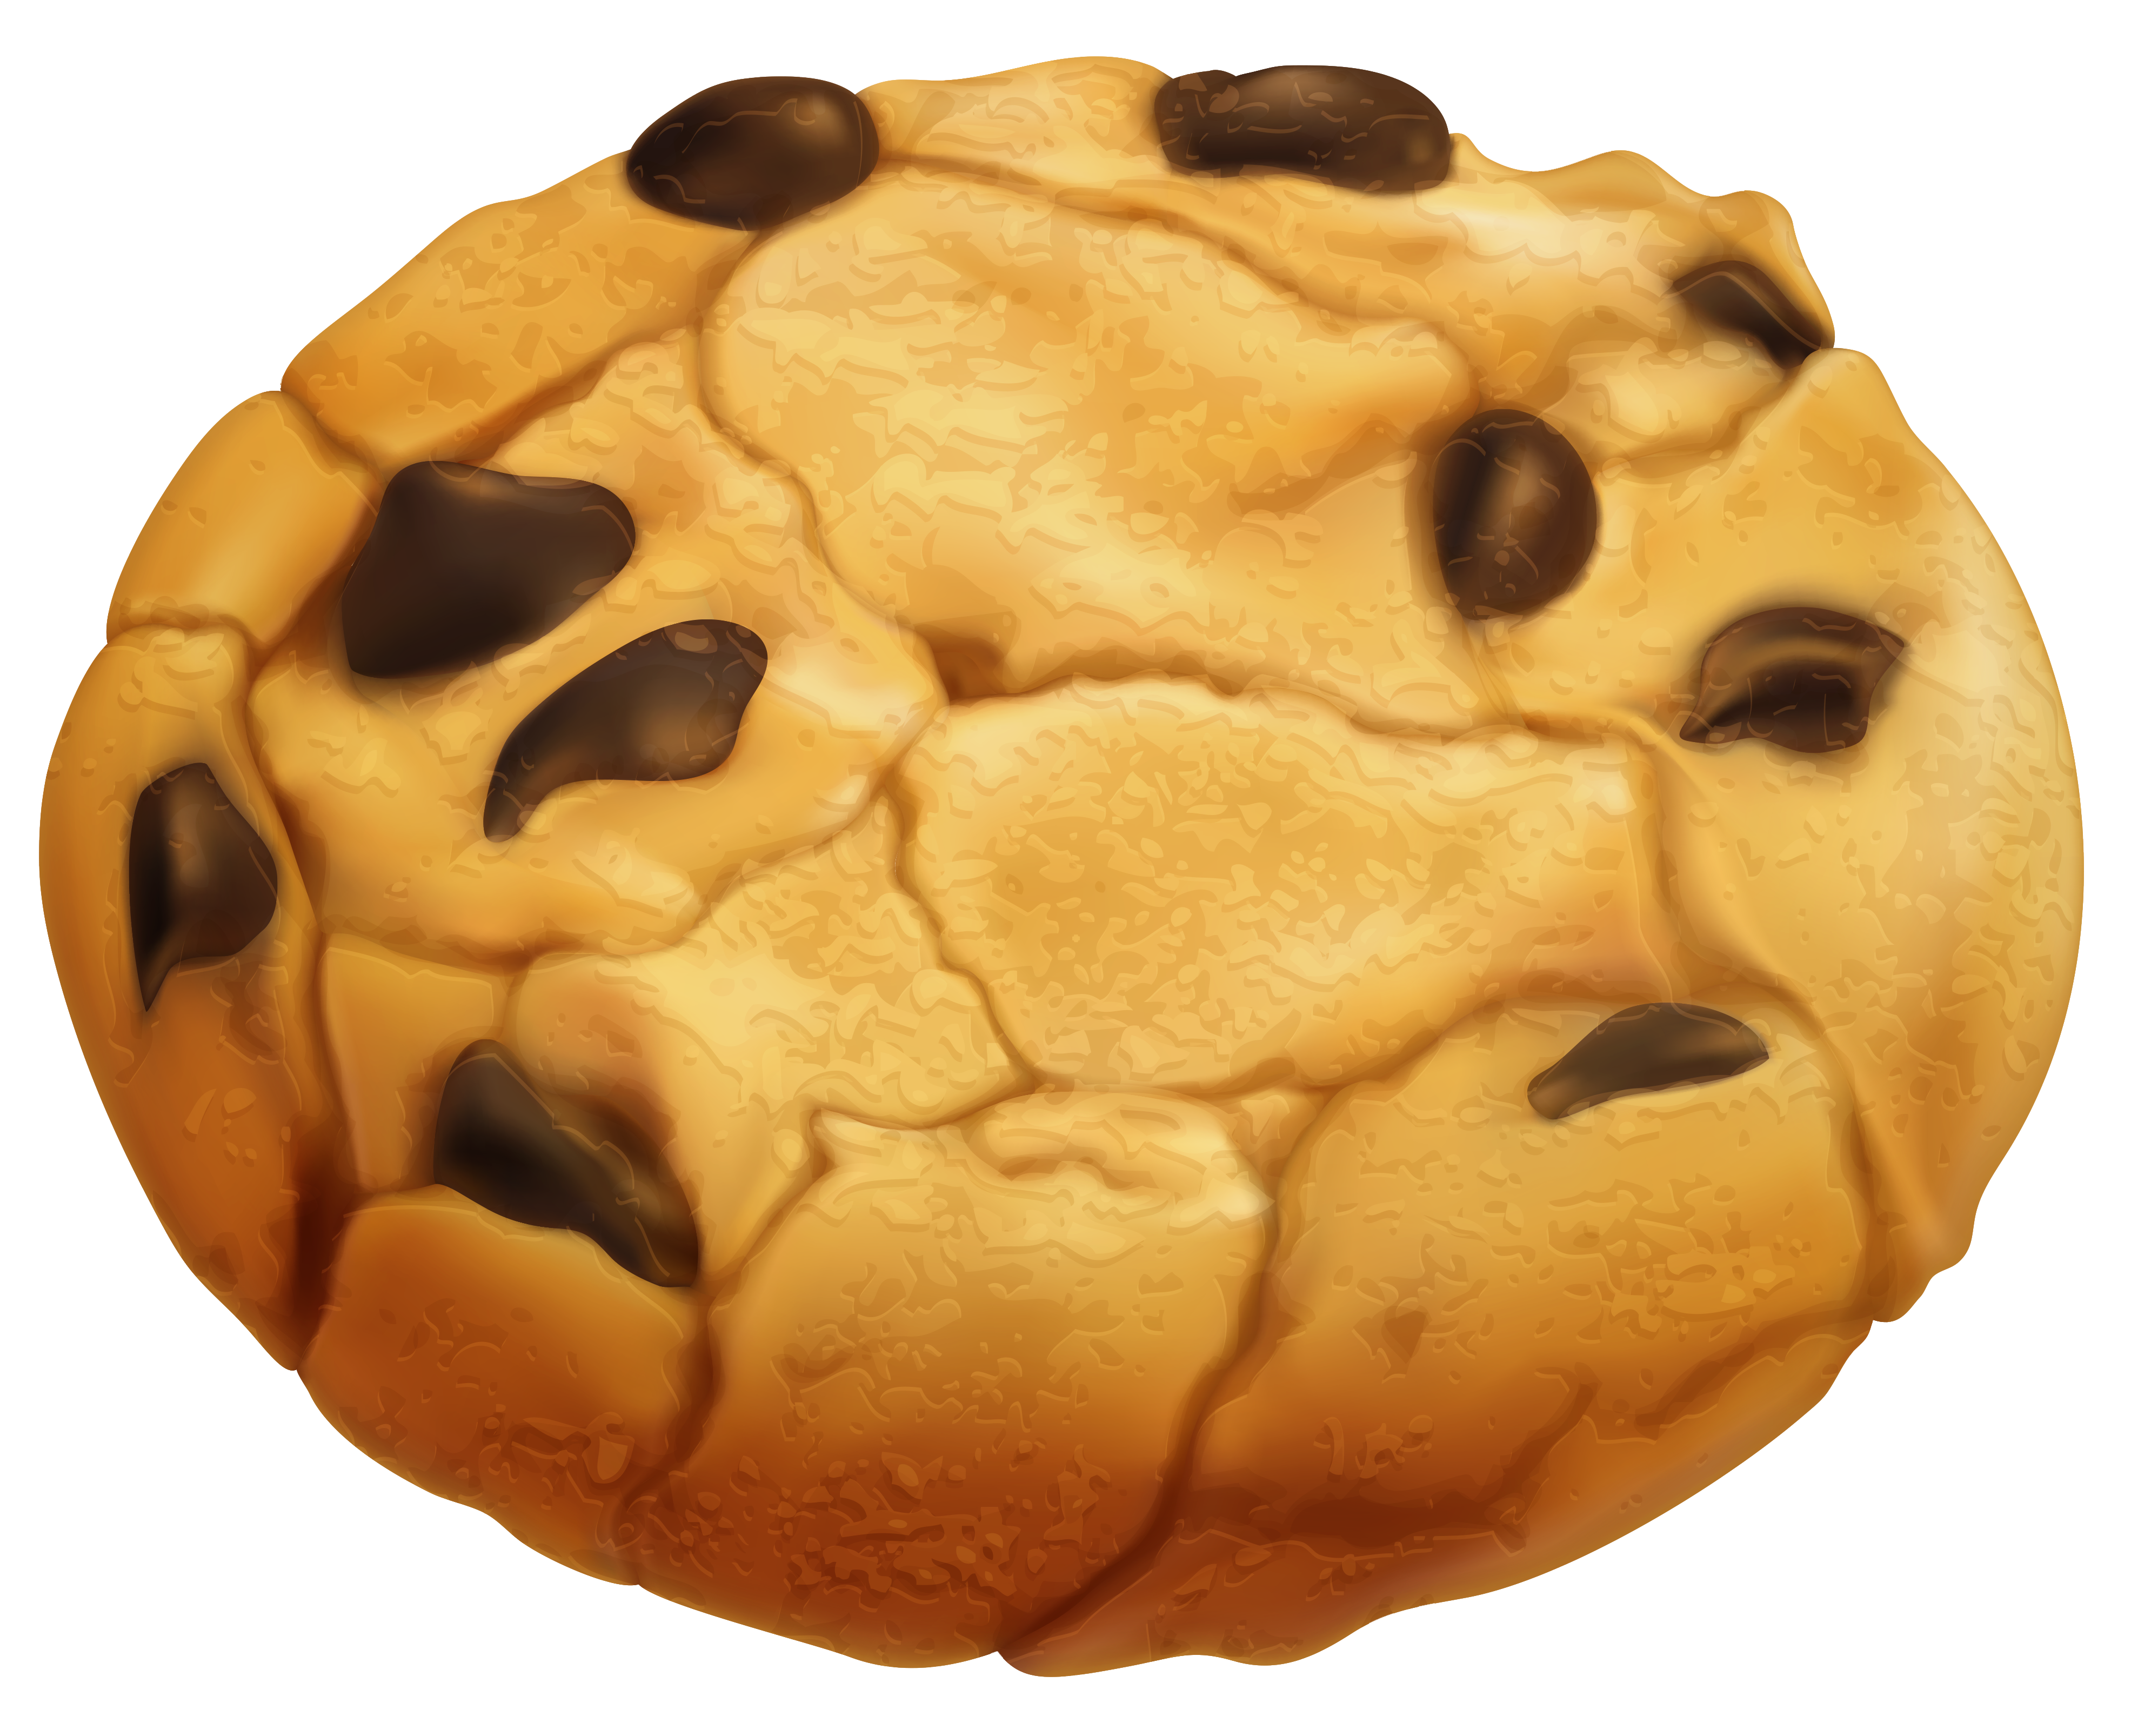 chocolate chip cookies png hd transparent chocolate chip cookies hd rh pluspng com cute chocolate chip cookie clipart bitten chocolate chip cookie clipart